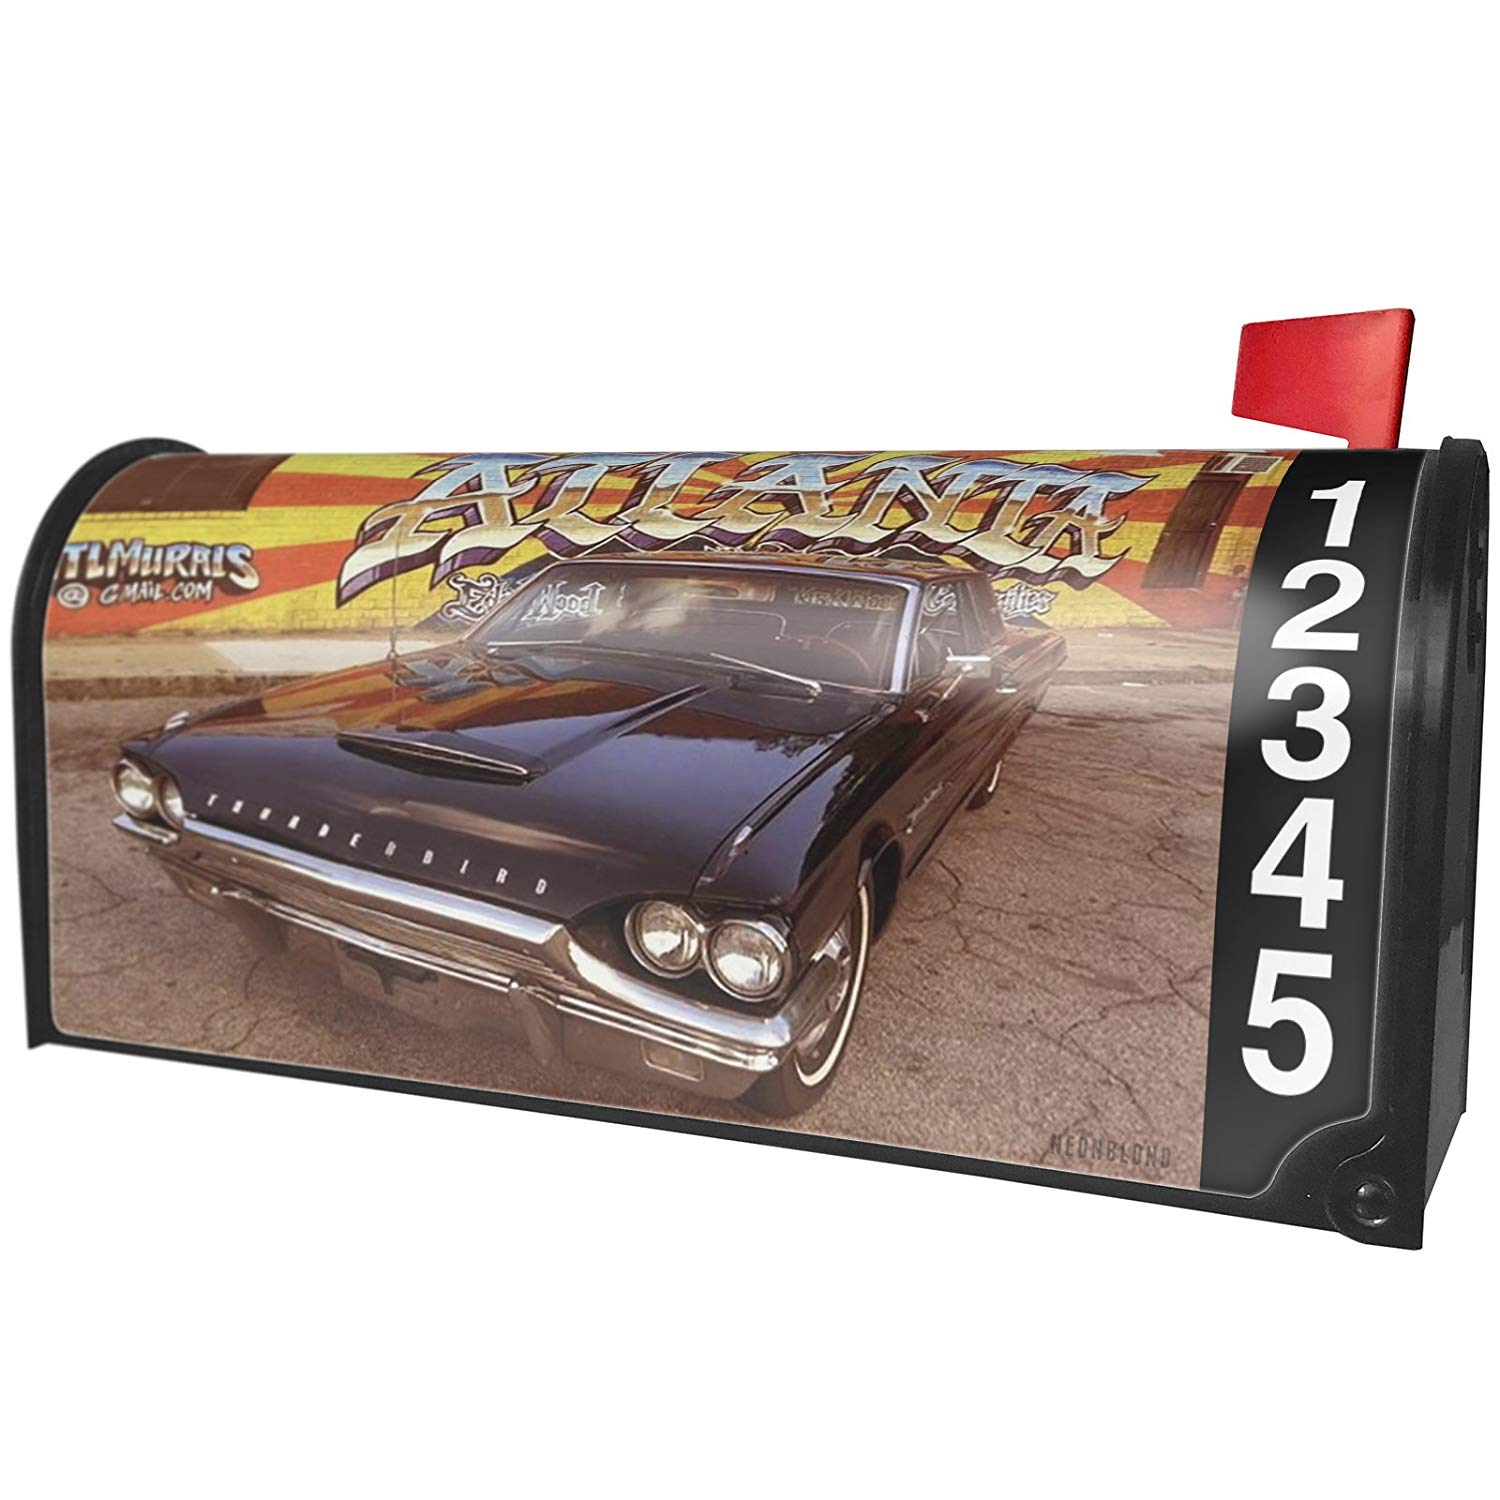 FORD TORINO Wagon 1972-1976 CAR COVER 100/% Waterproof 100/% Breathable